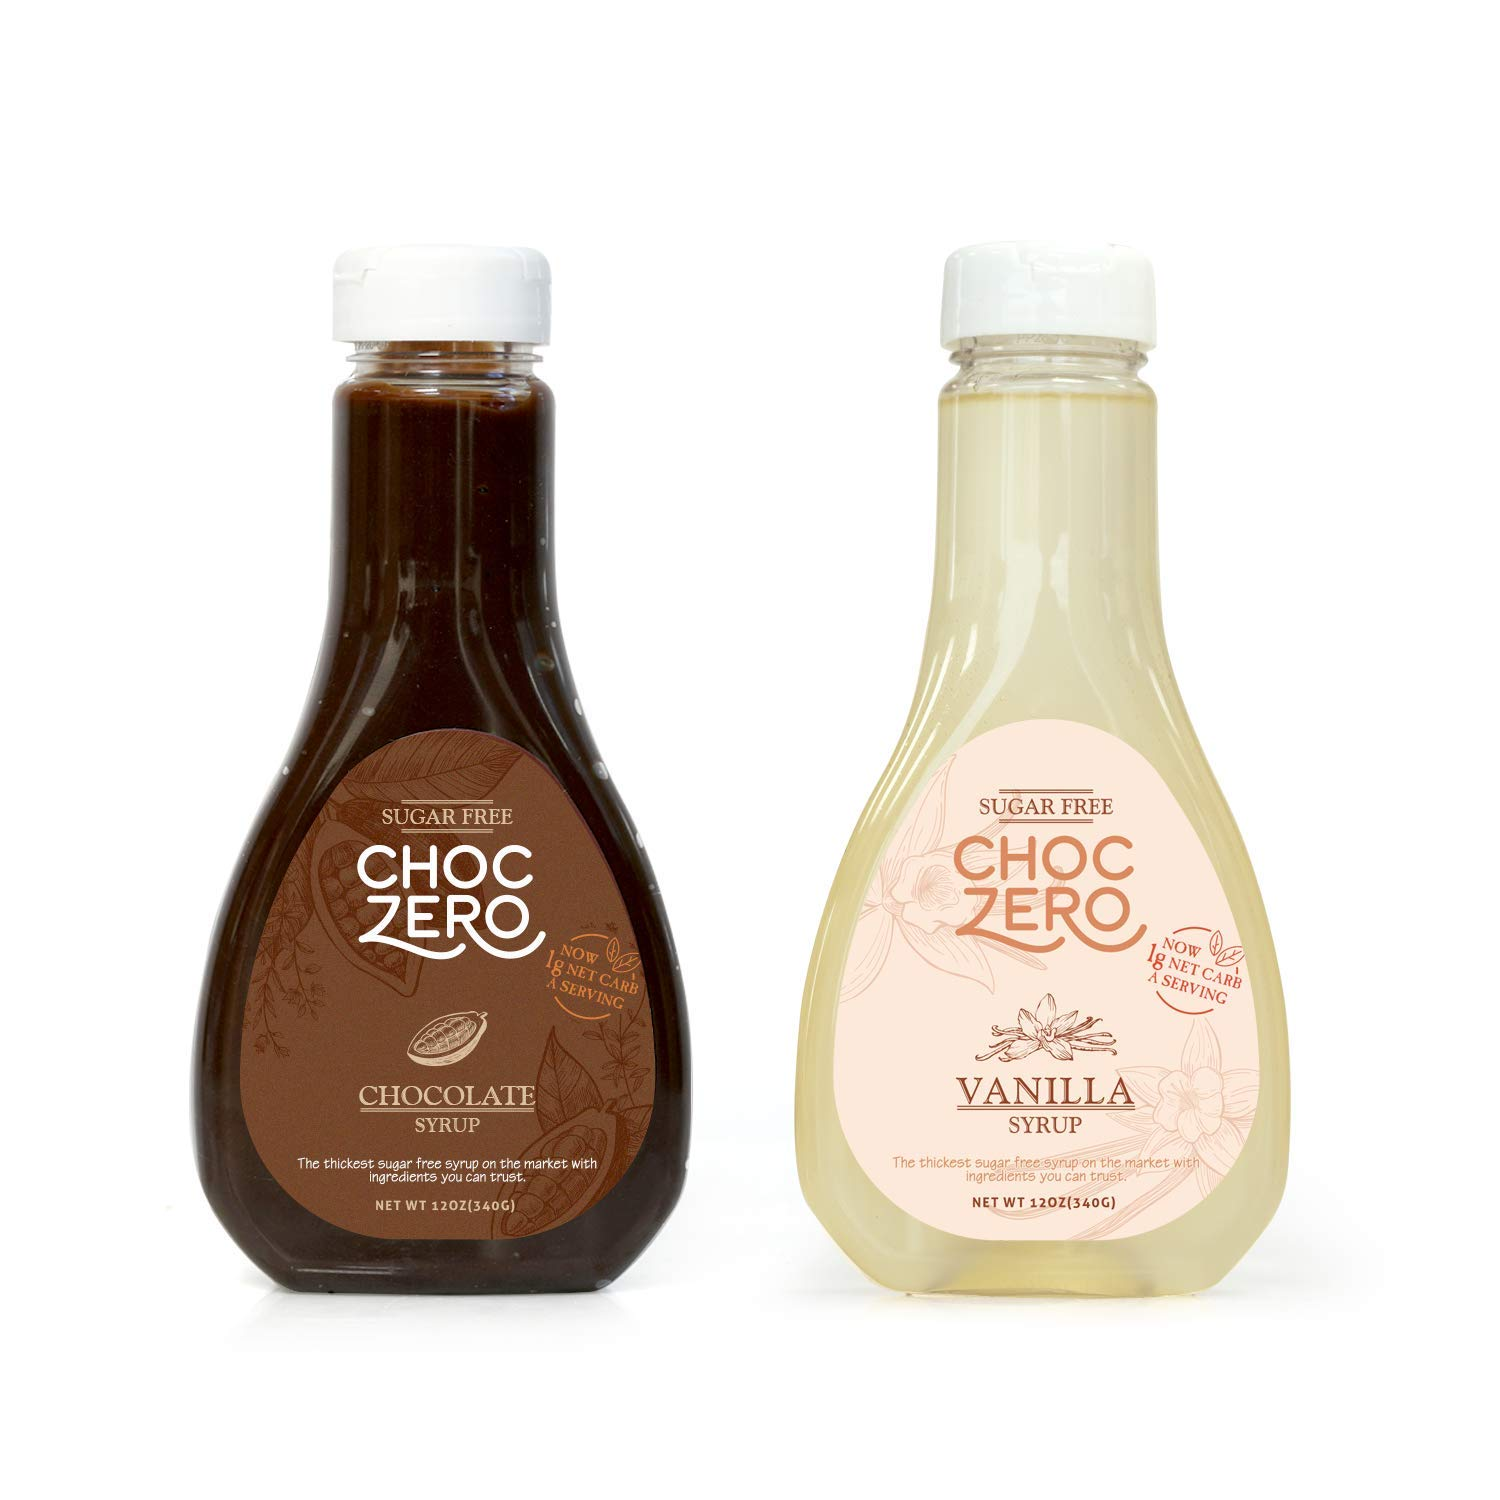 ChocZero's Chocolate and Vanilla Syrup. Sugar Free, Low Net Carb, No Preservatives. Gluten Free. No Sugar Alcohols. Dessert toppings and baking syrups for keto (2 bottles) by ChocZero (Image #1)